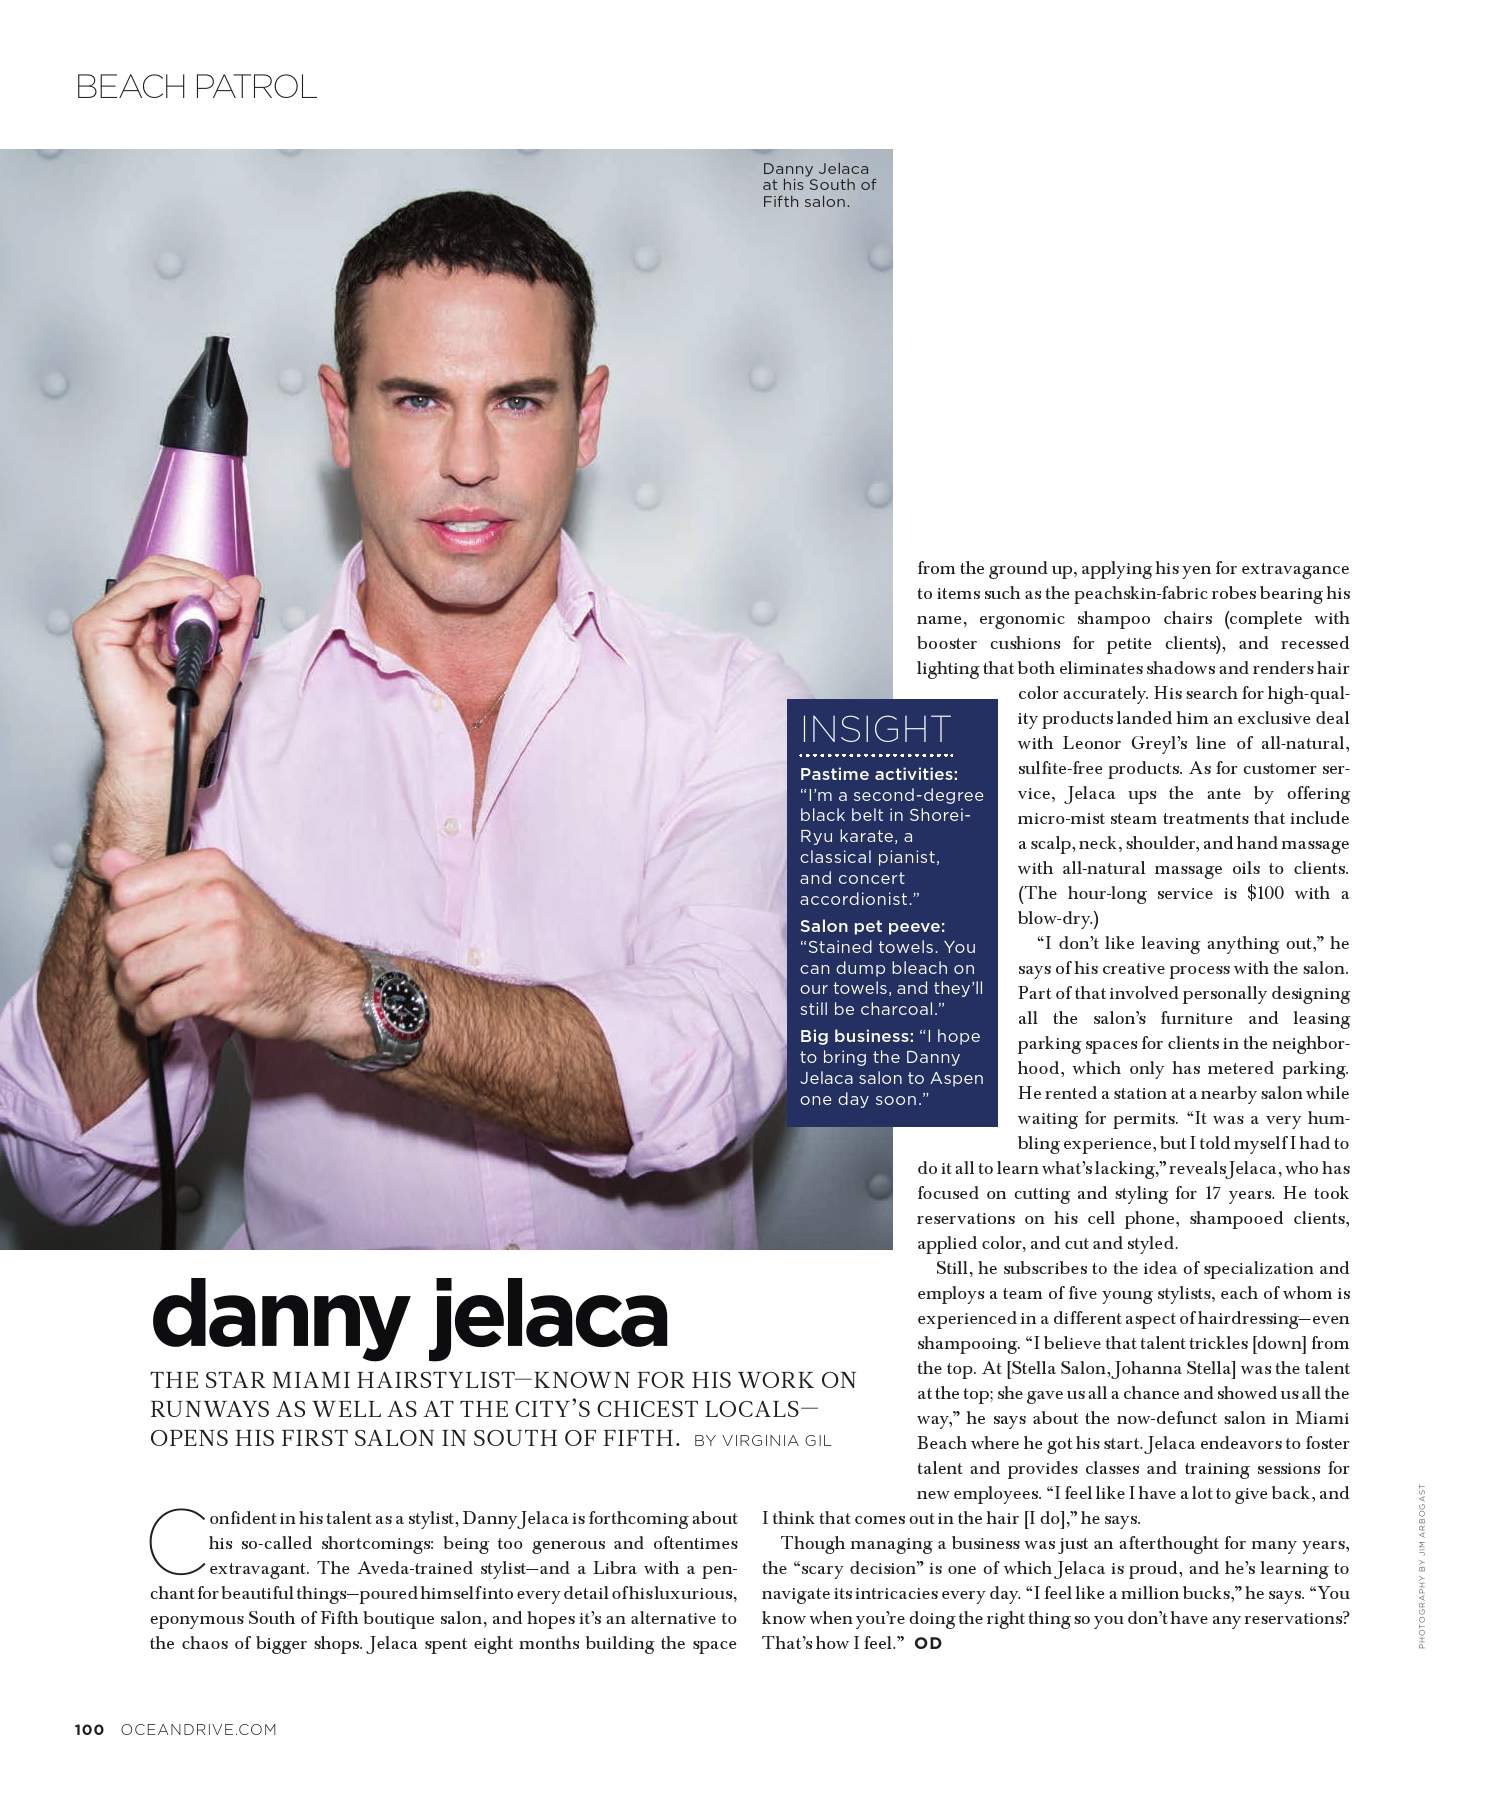 Danny Jelaca on Beach Patrol in Ocean Drive Magazine